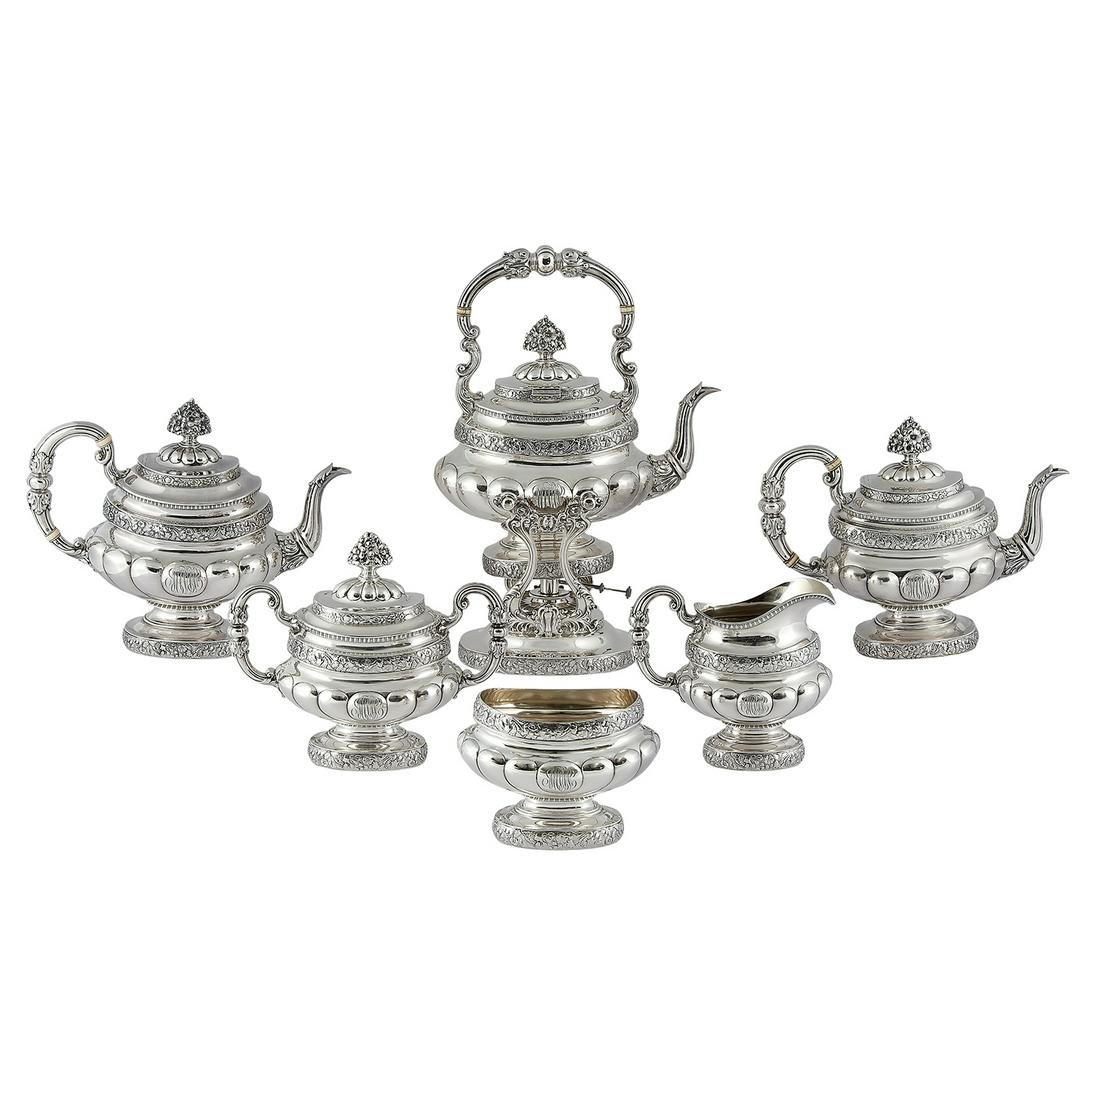 Reed & Barton six-piece tea/coffee service, #610